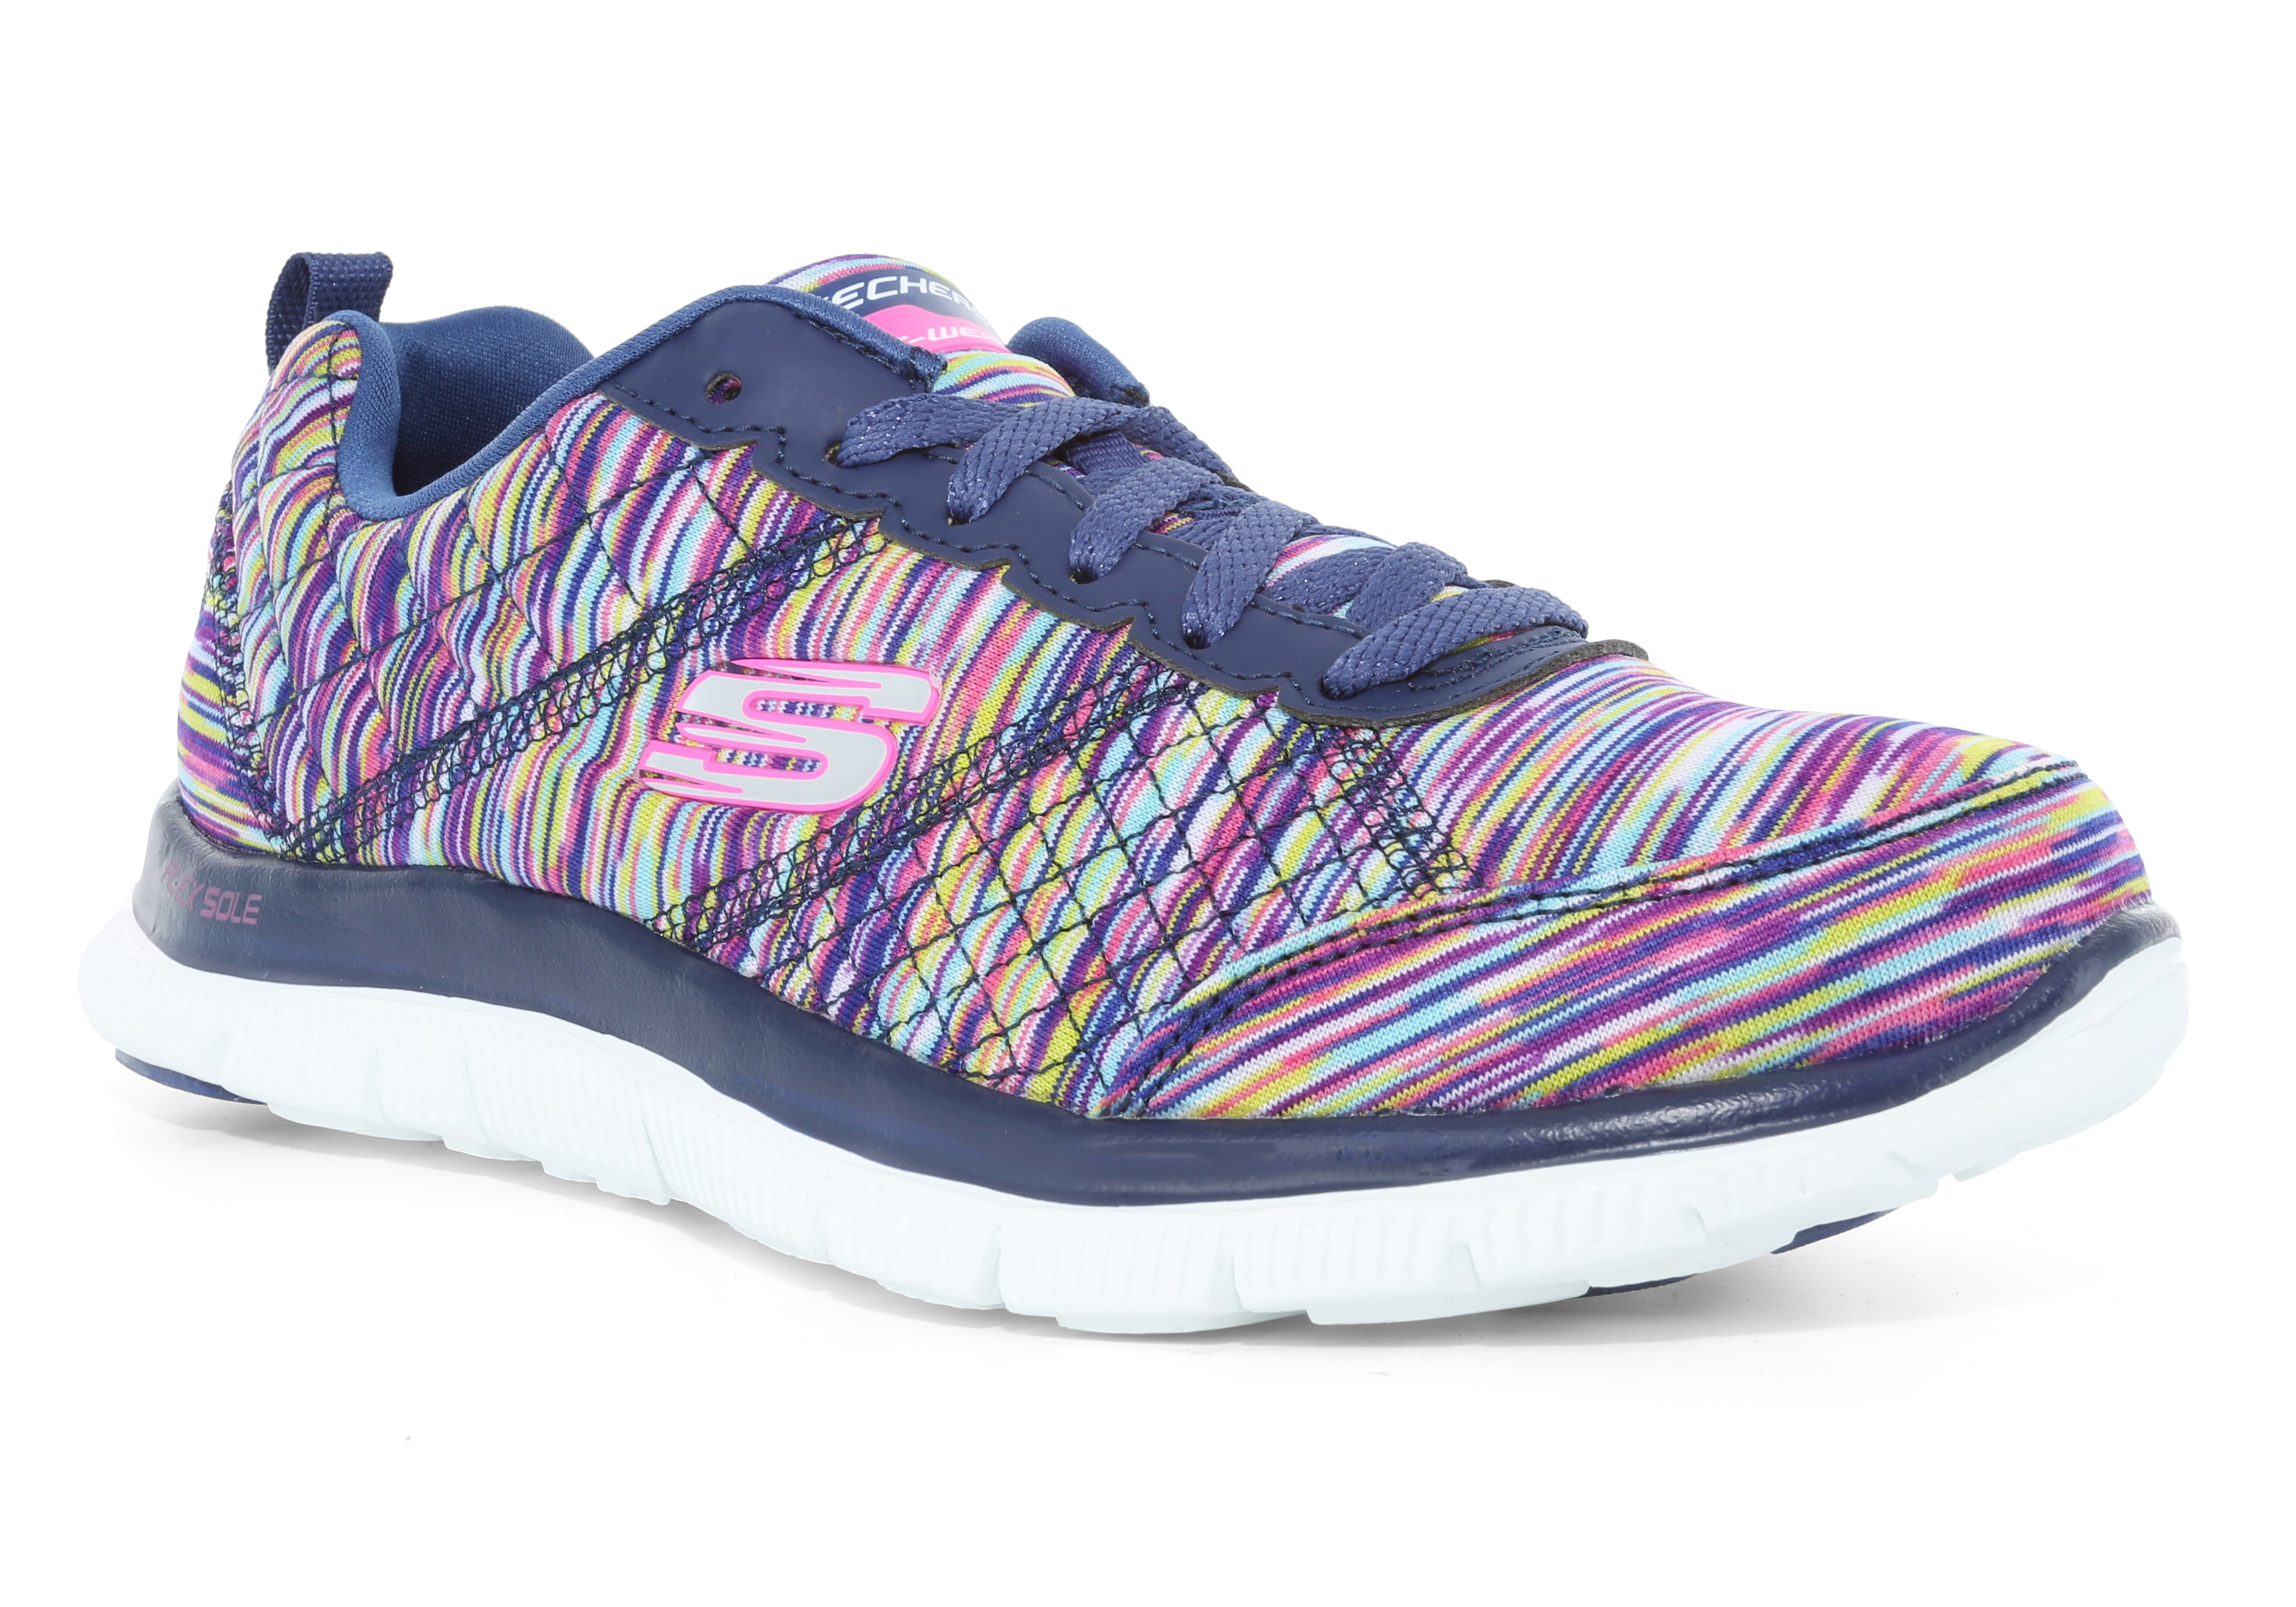 Womens > Athletic Shoes > Running > Womens Skechers Sport Flex Appeal ...